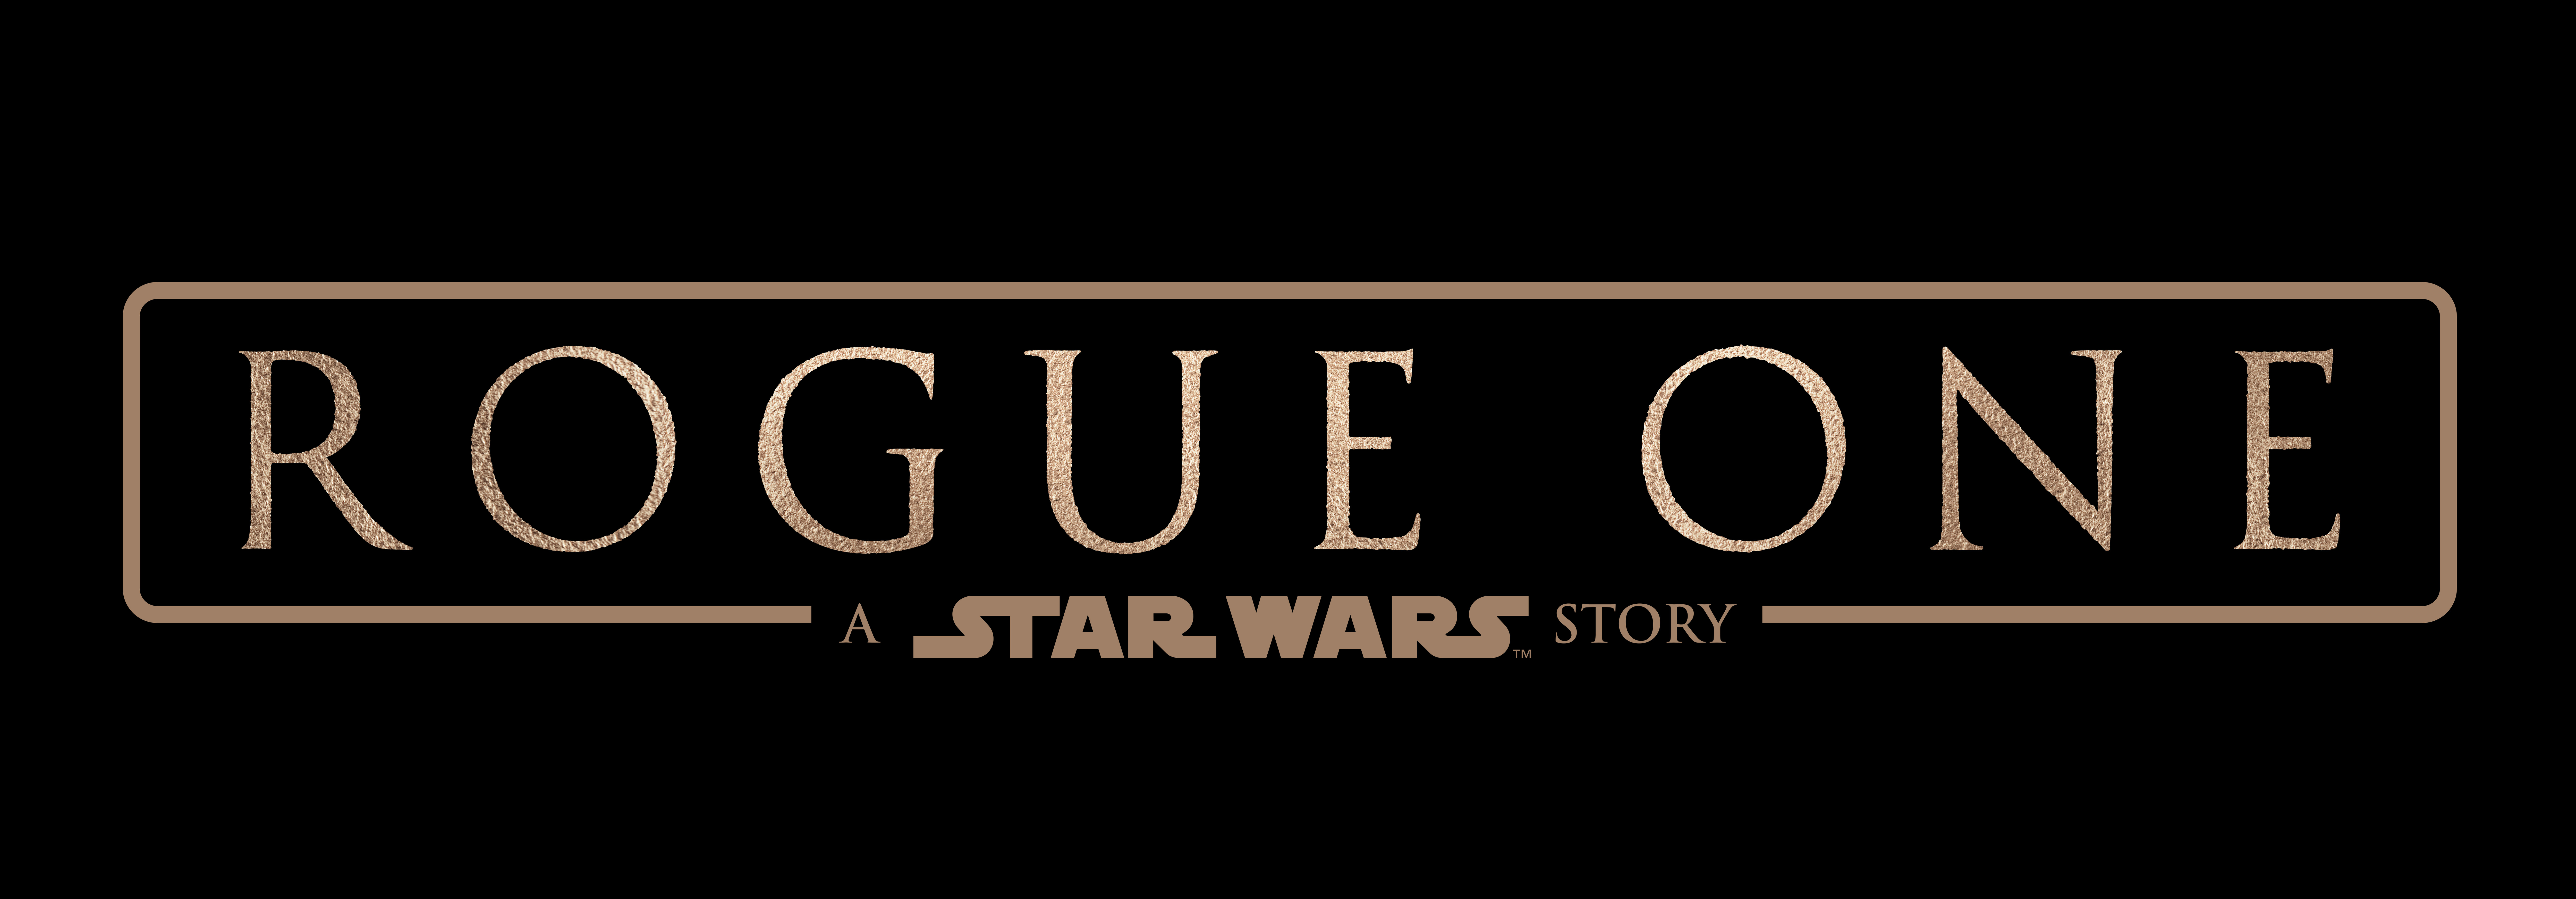 Star Wars: Rogue One helmets revealed?